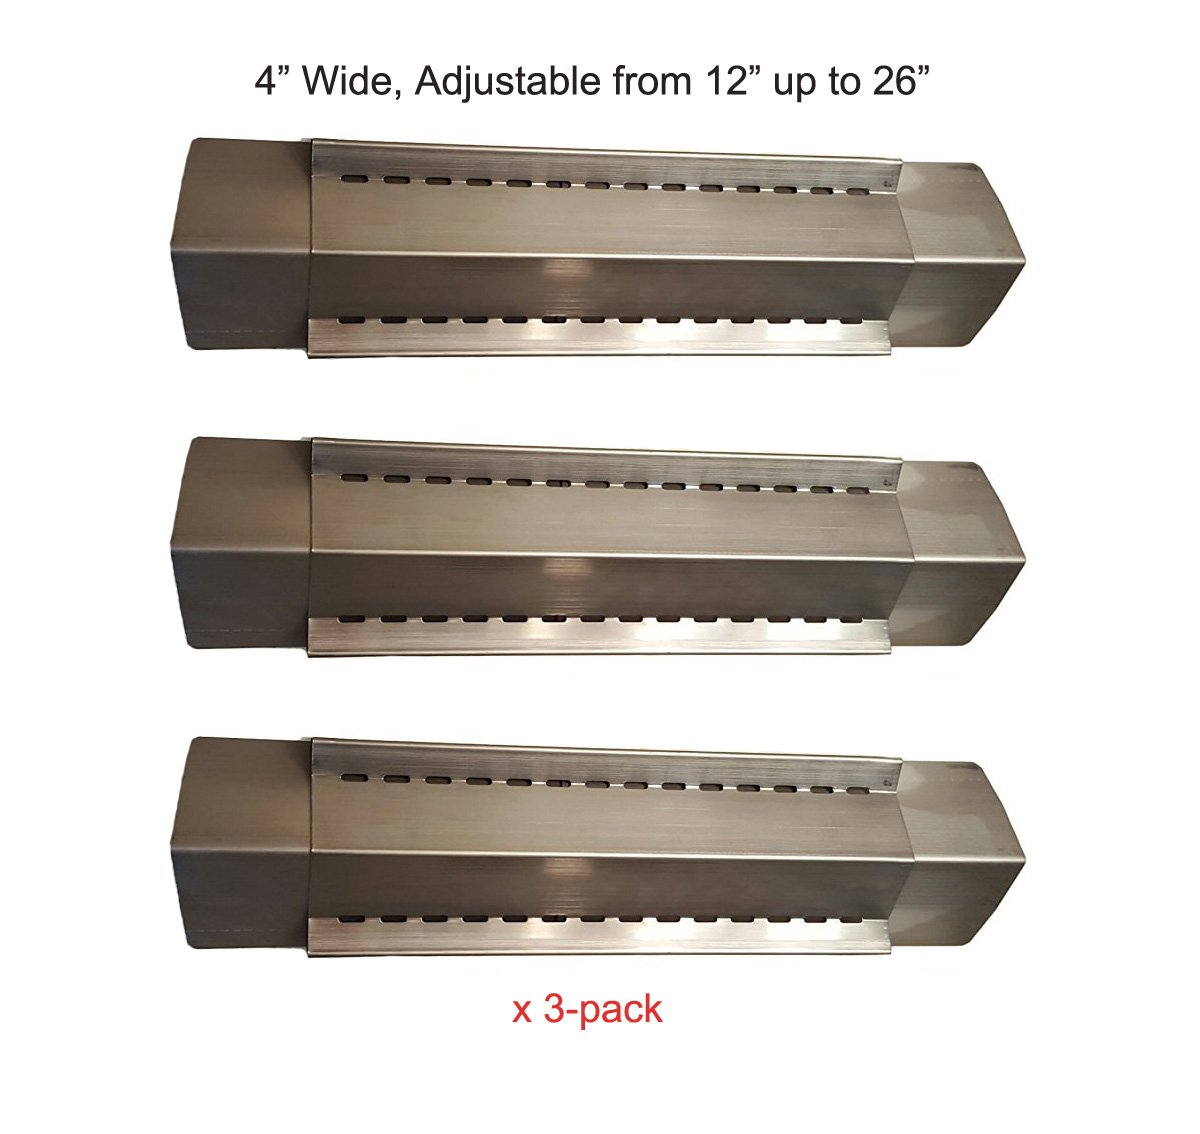 BBQ funland (3-pack) Stainless Steel Adjustable Heat Plate, Heat Shield, Heat Tent, Burner Cover and Flavorizer Bar for Grill King, Aussie, Charmglow, Brinkmann, Uniflame, Lowes Model Grills by BBQ funland